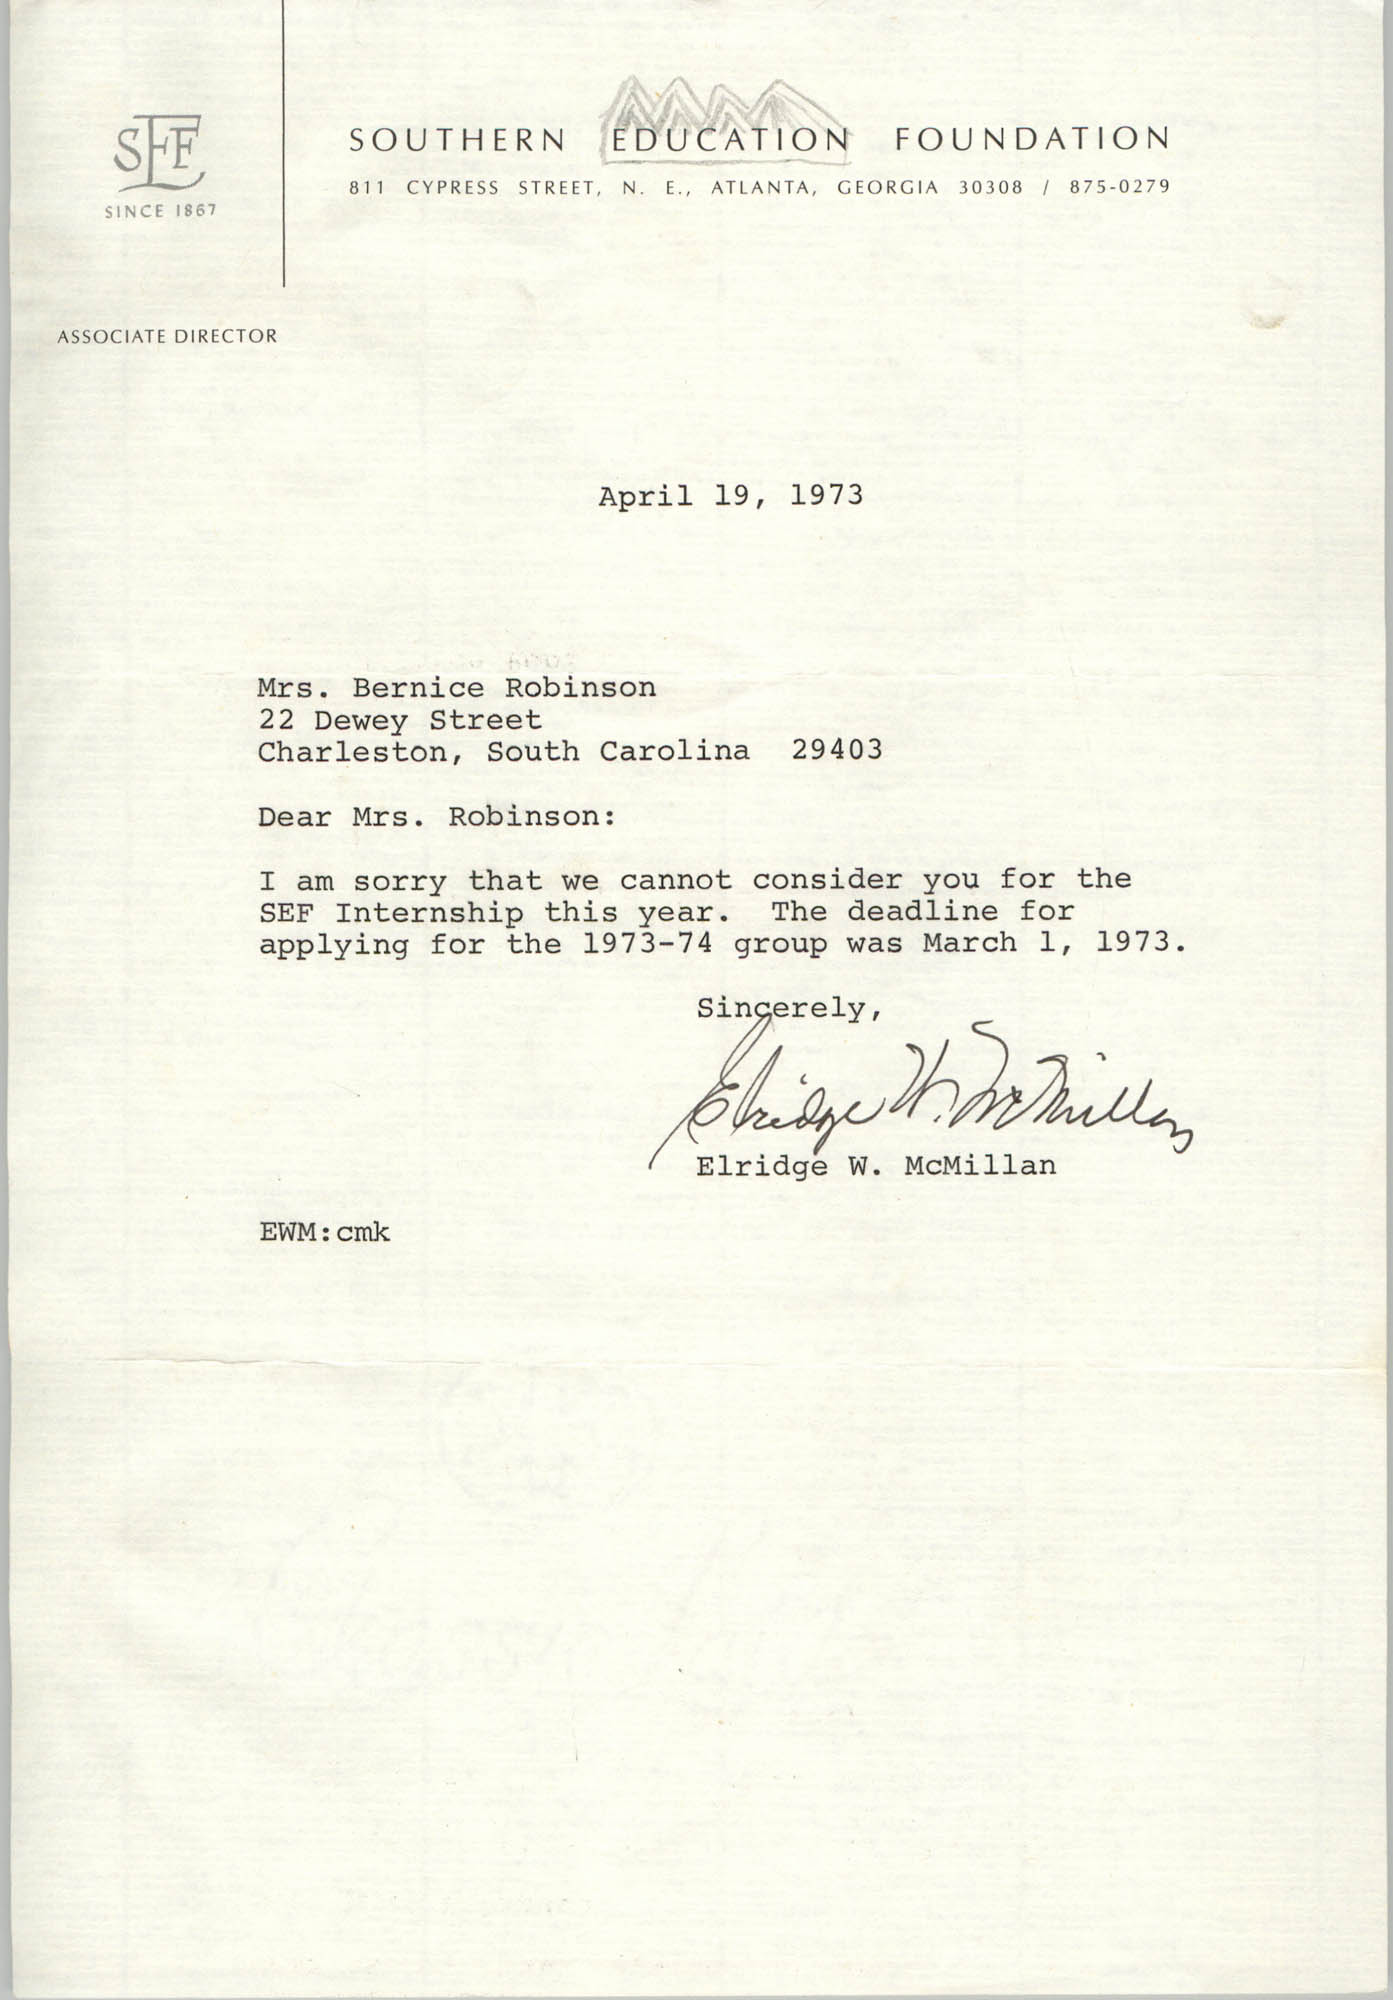 Letter from Elridge W. McMillan to Bernice Robinson, April 19, 1973